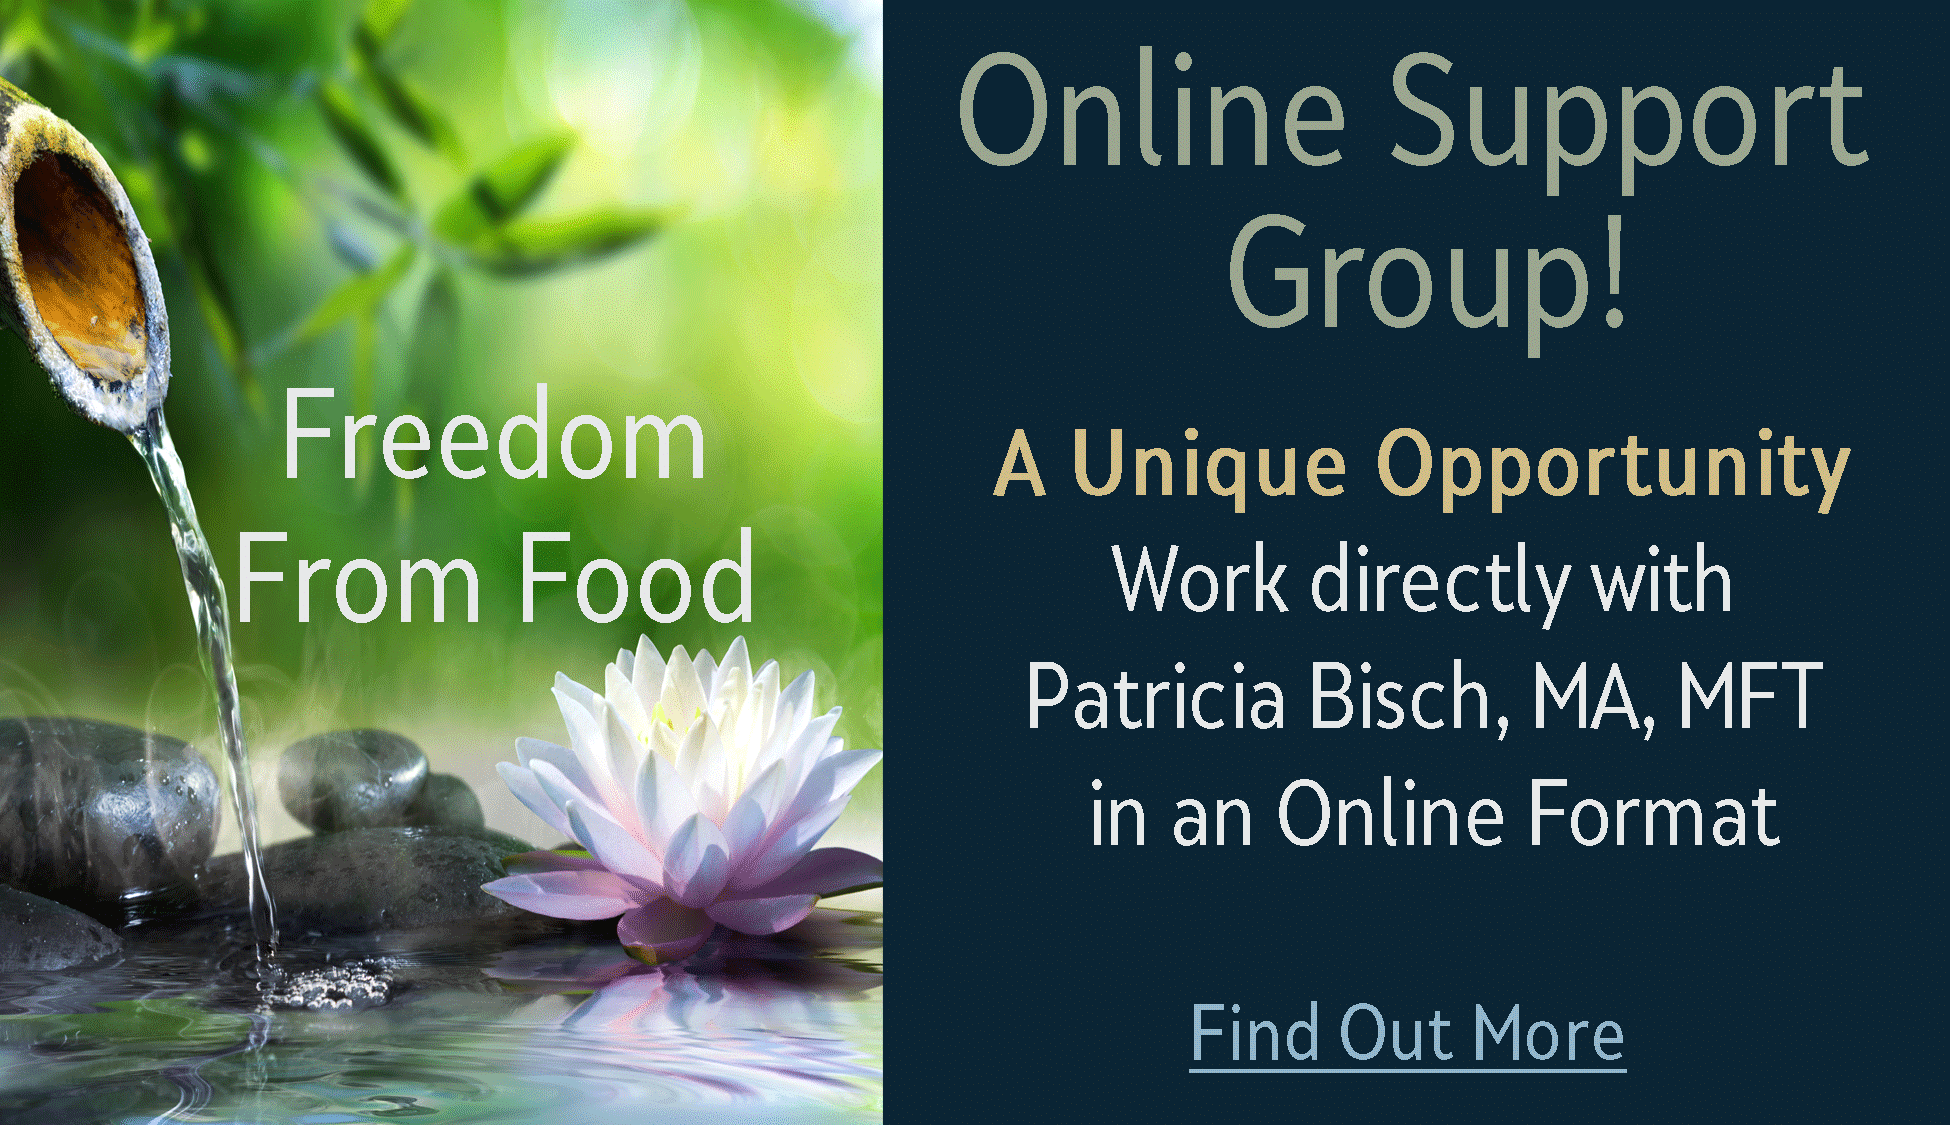 Online Support Group Announcement